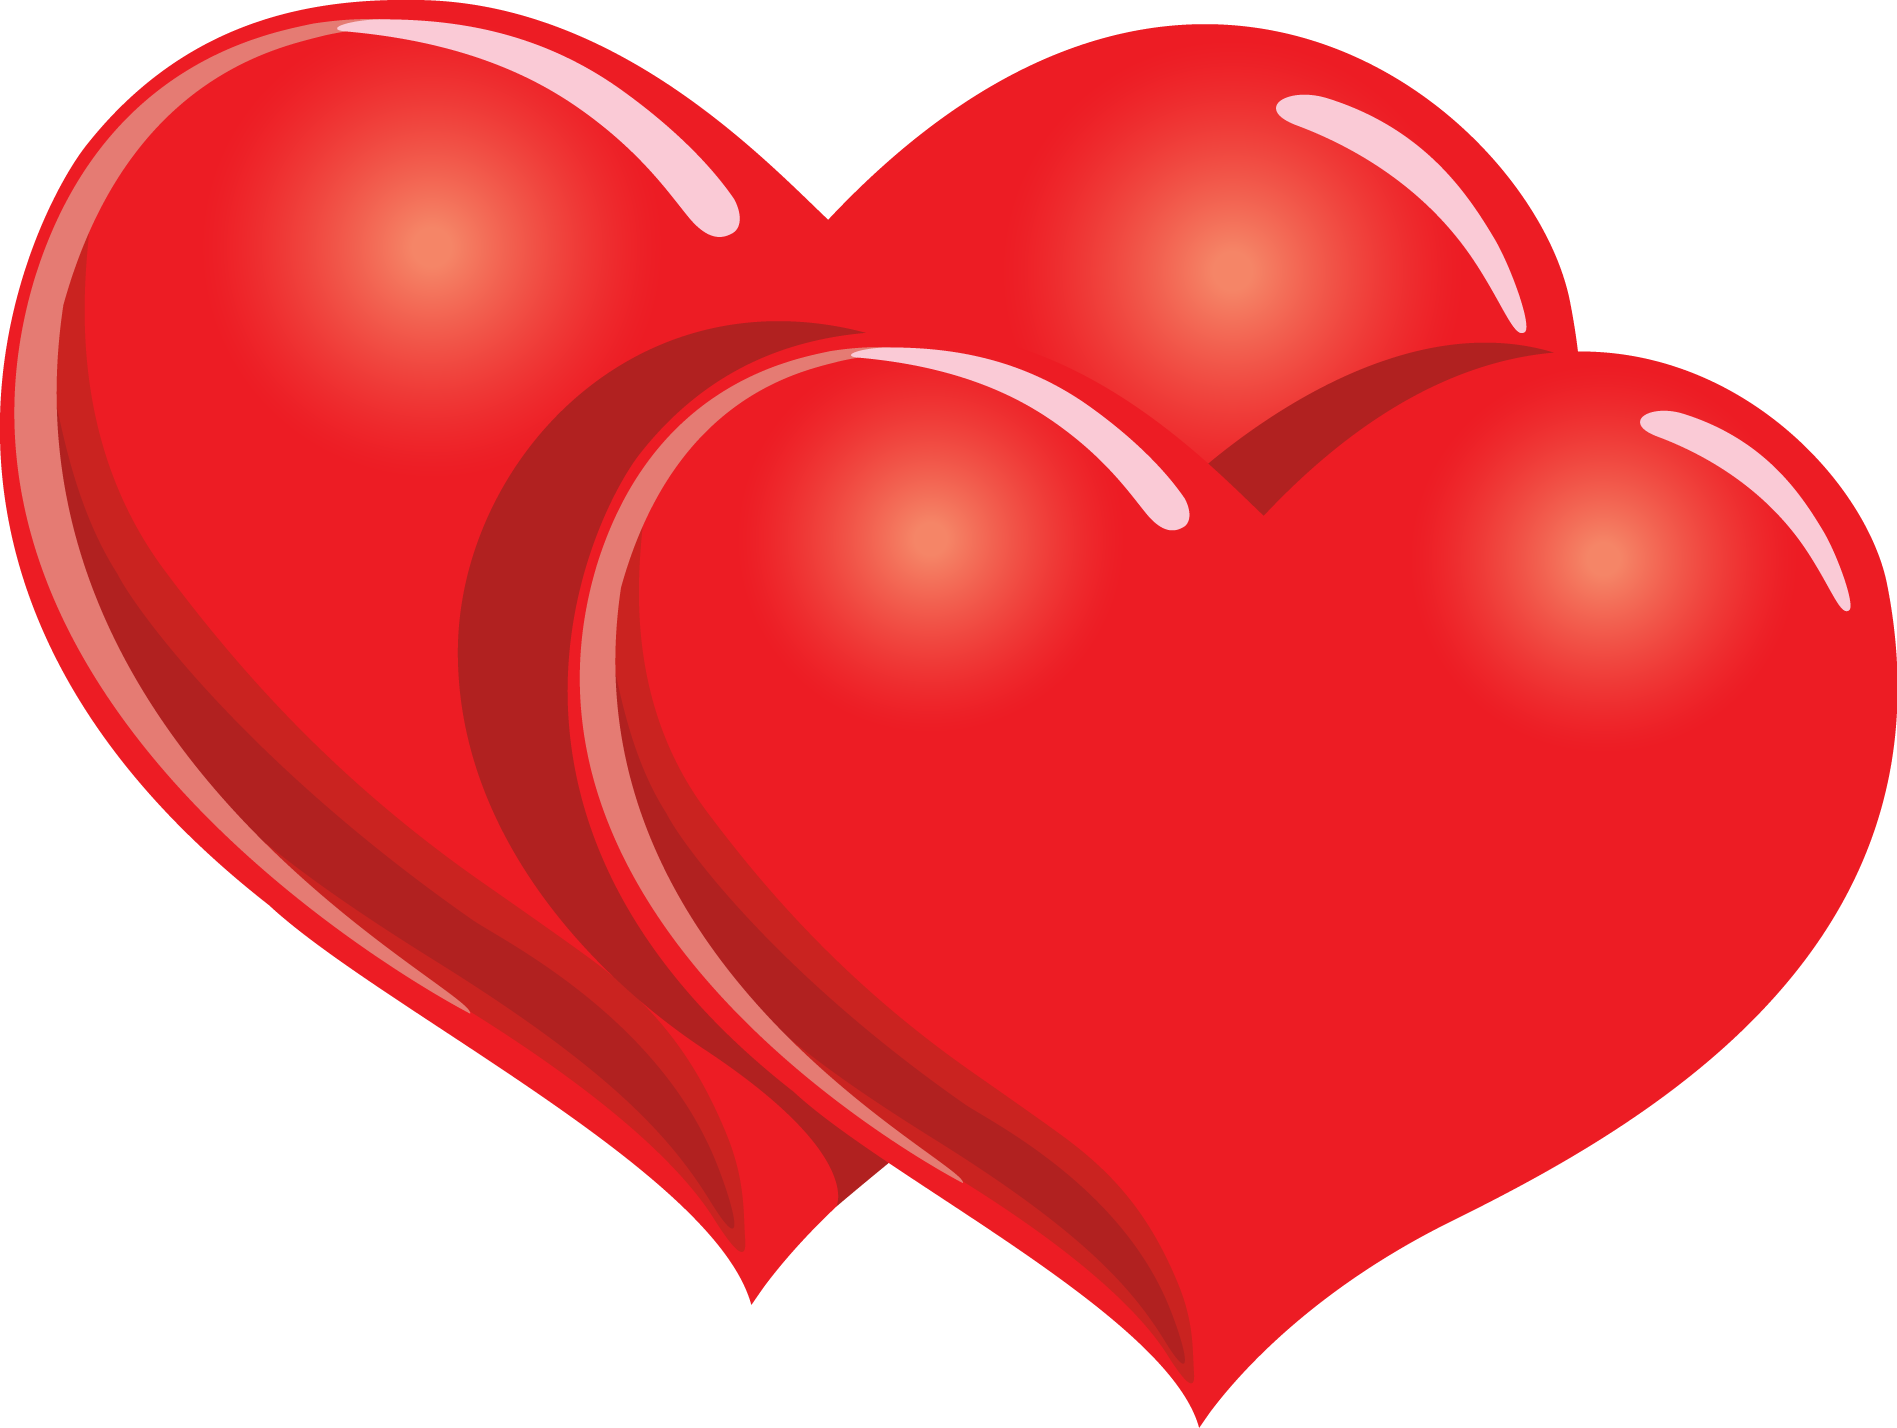 ... red-heart-clipart-5 ...-... red-heart-clipart-5 ...-11